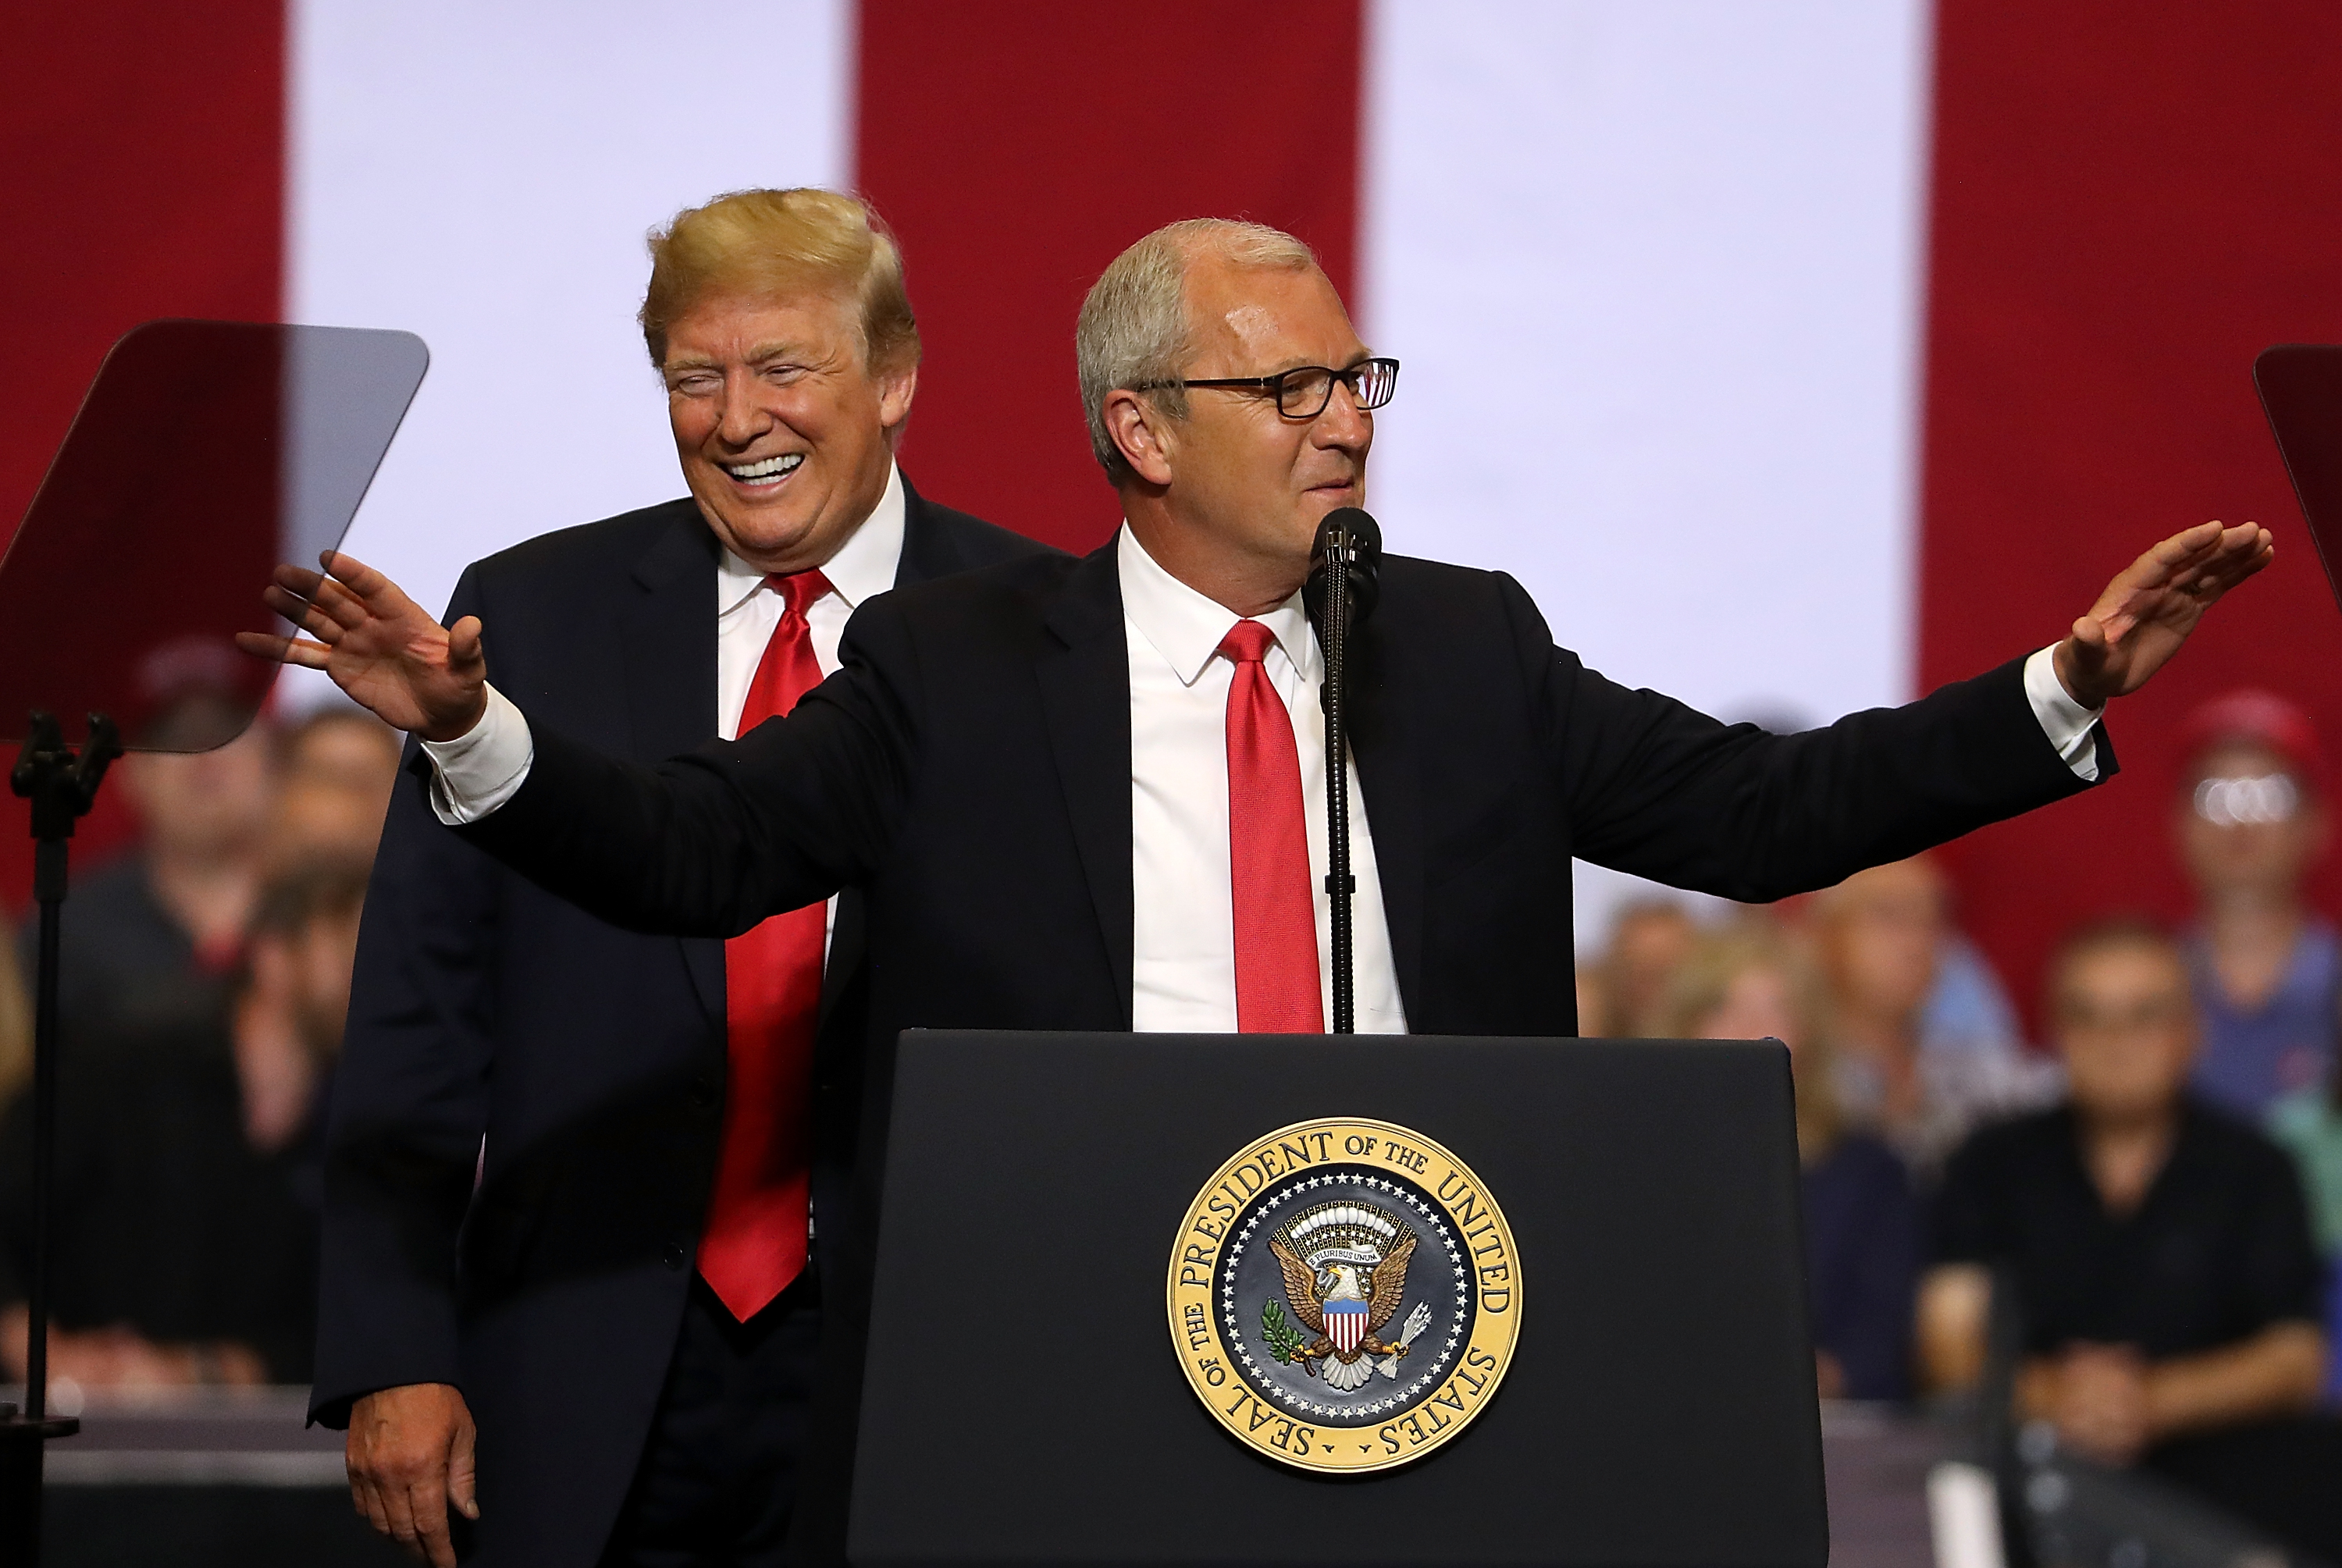 """FARGO, ND - JUNE 27: U.S. president Donald Trump (L) looks on as U.S. Rep. Kevin Cramer (R-ND) speaks to supporters during a campaign rally at Scheels Arena on June 27, 2018 in Fargo, North Dakota. President Trump held a campaign style """"Make America Great Again"""" rally in Fargo, North Dakota with thousands in attendance. (Photo by Justin Sullivan/Getty Images)"""